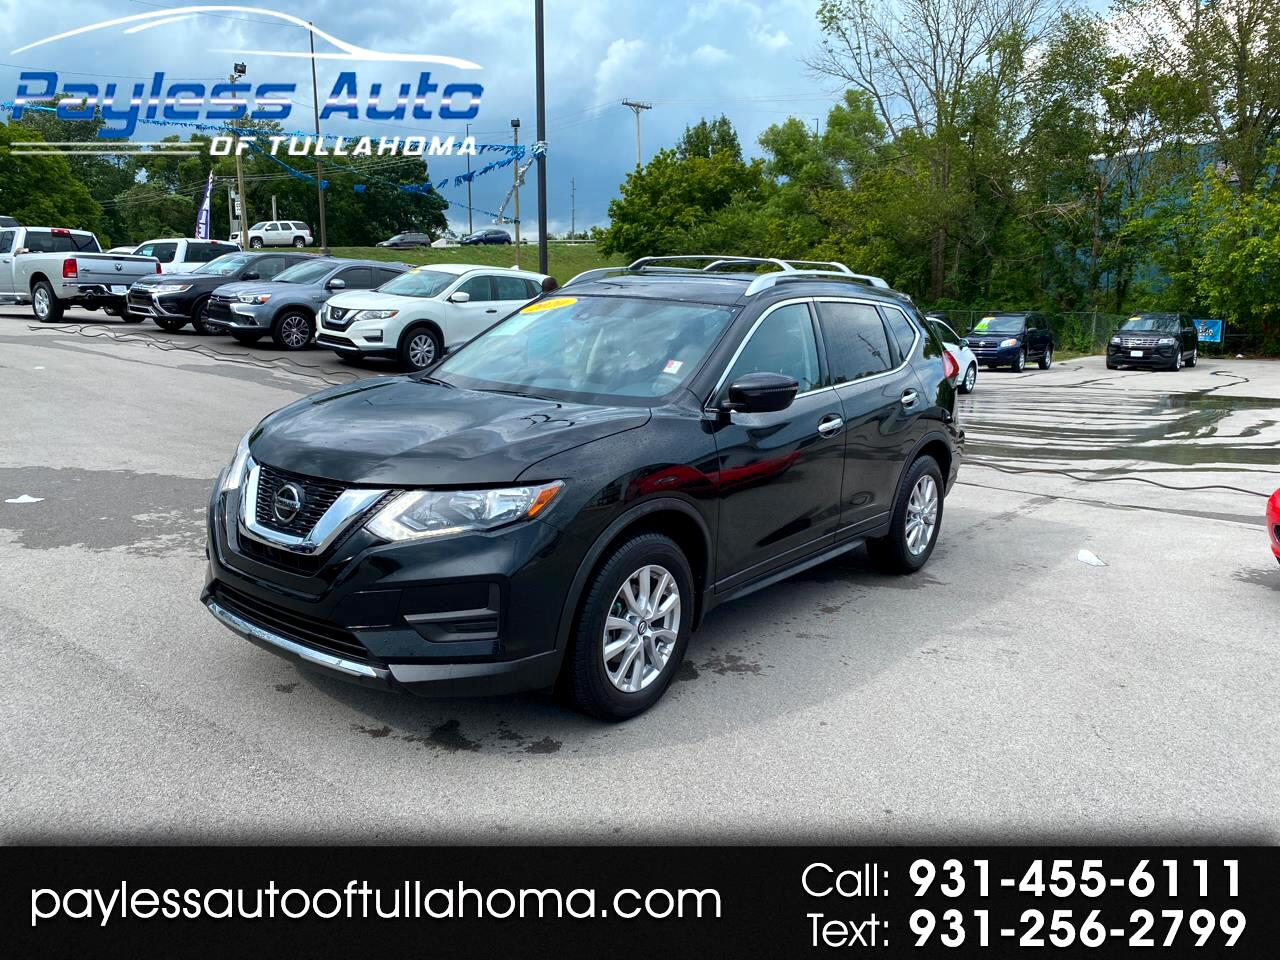 Used 2020 Nissan Rogue Special Edition For Sale In Tullahoma Tn 37388 Payless Auto Of Tullahoma